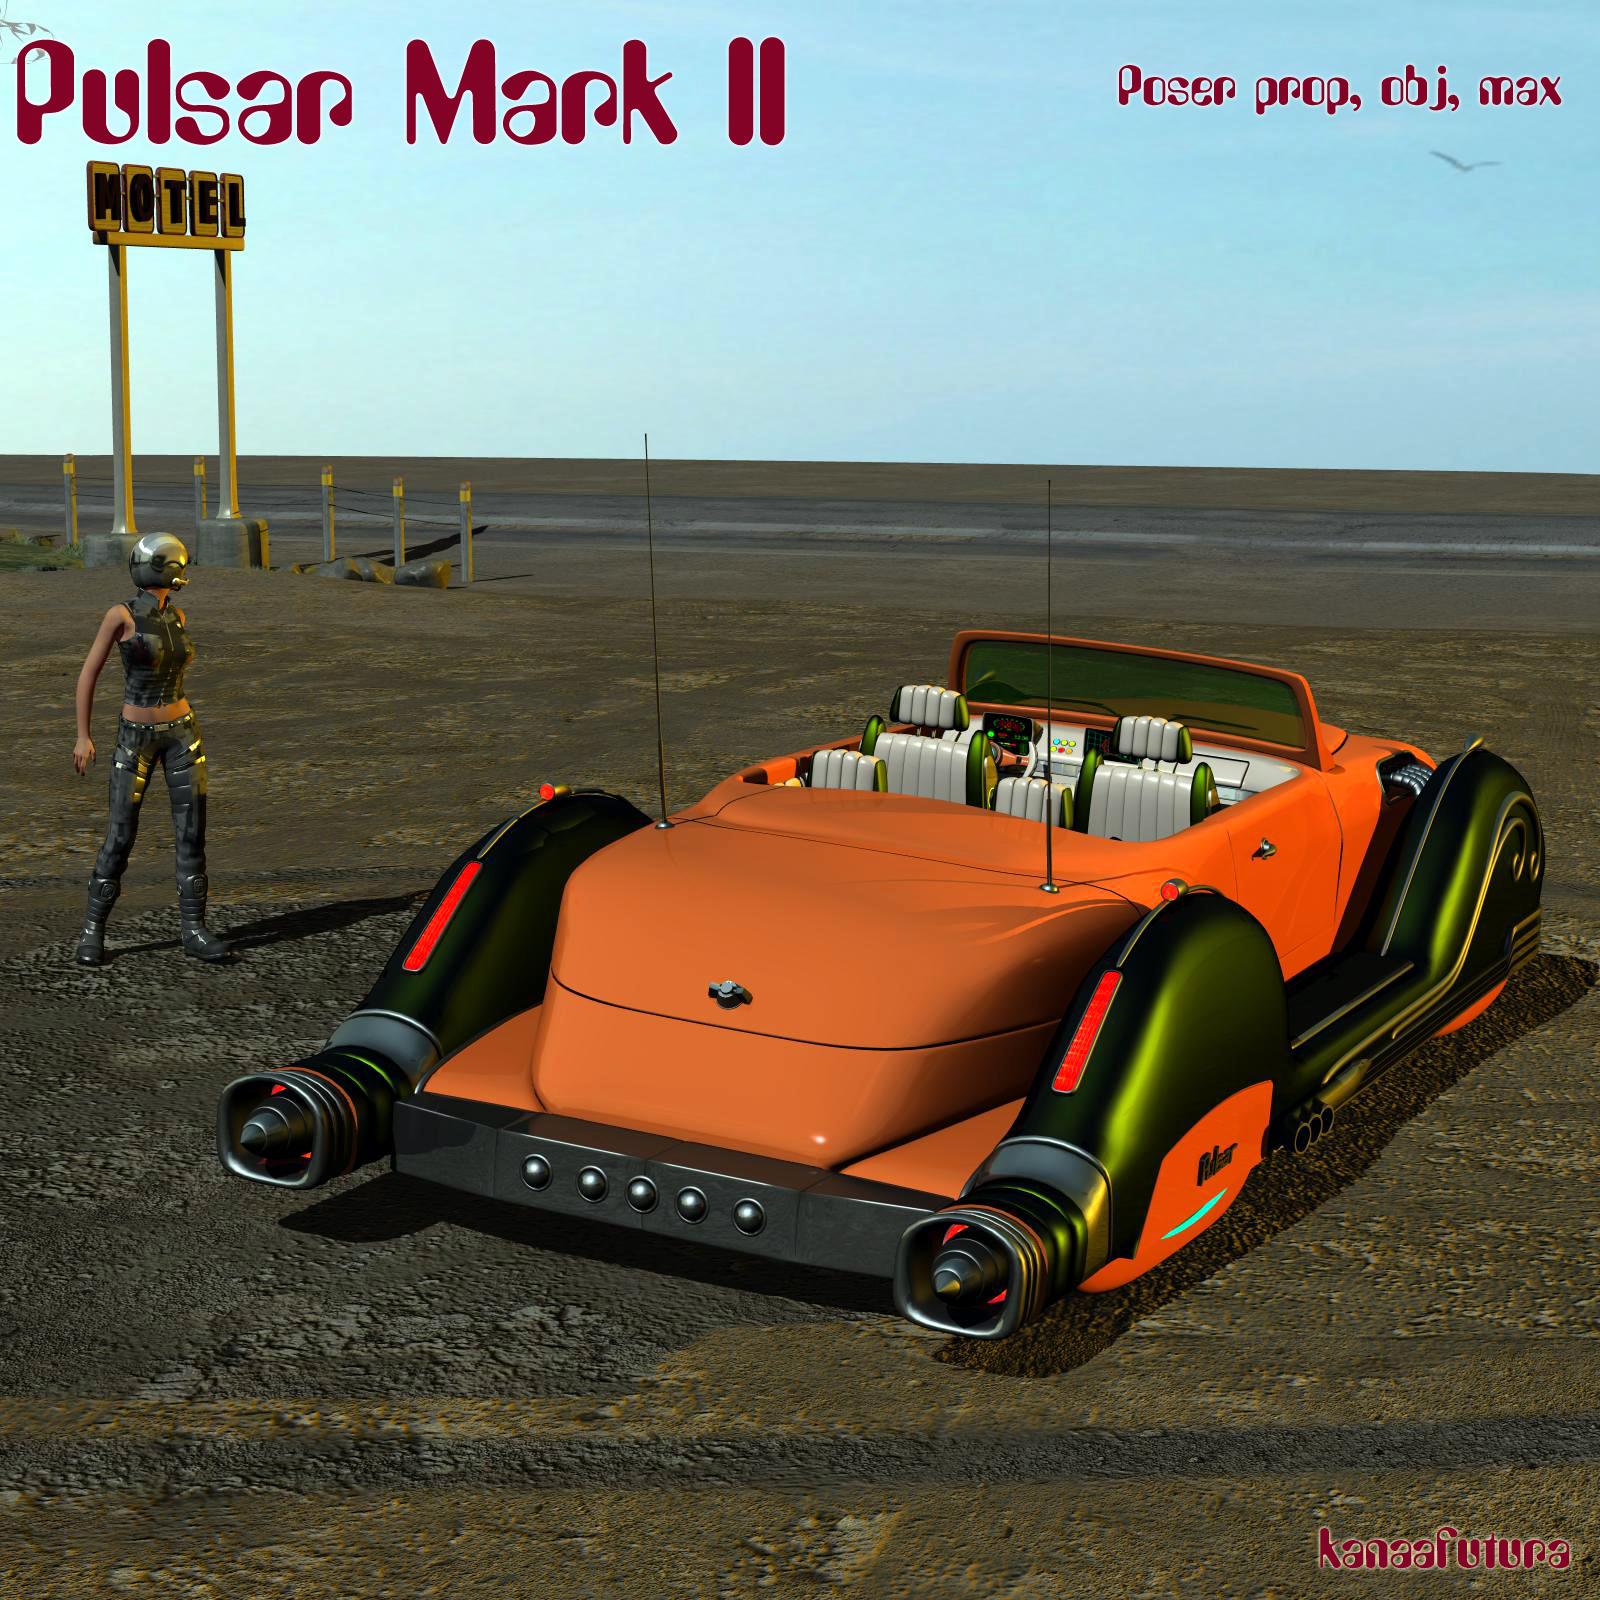 Pulsar Mark II Poser prop by kanaa